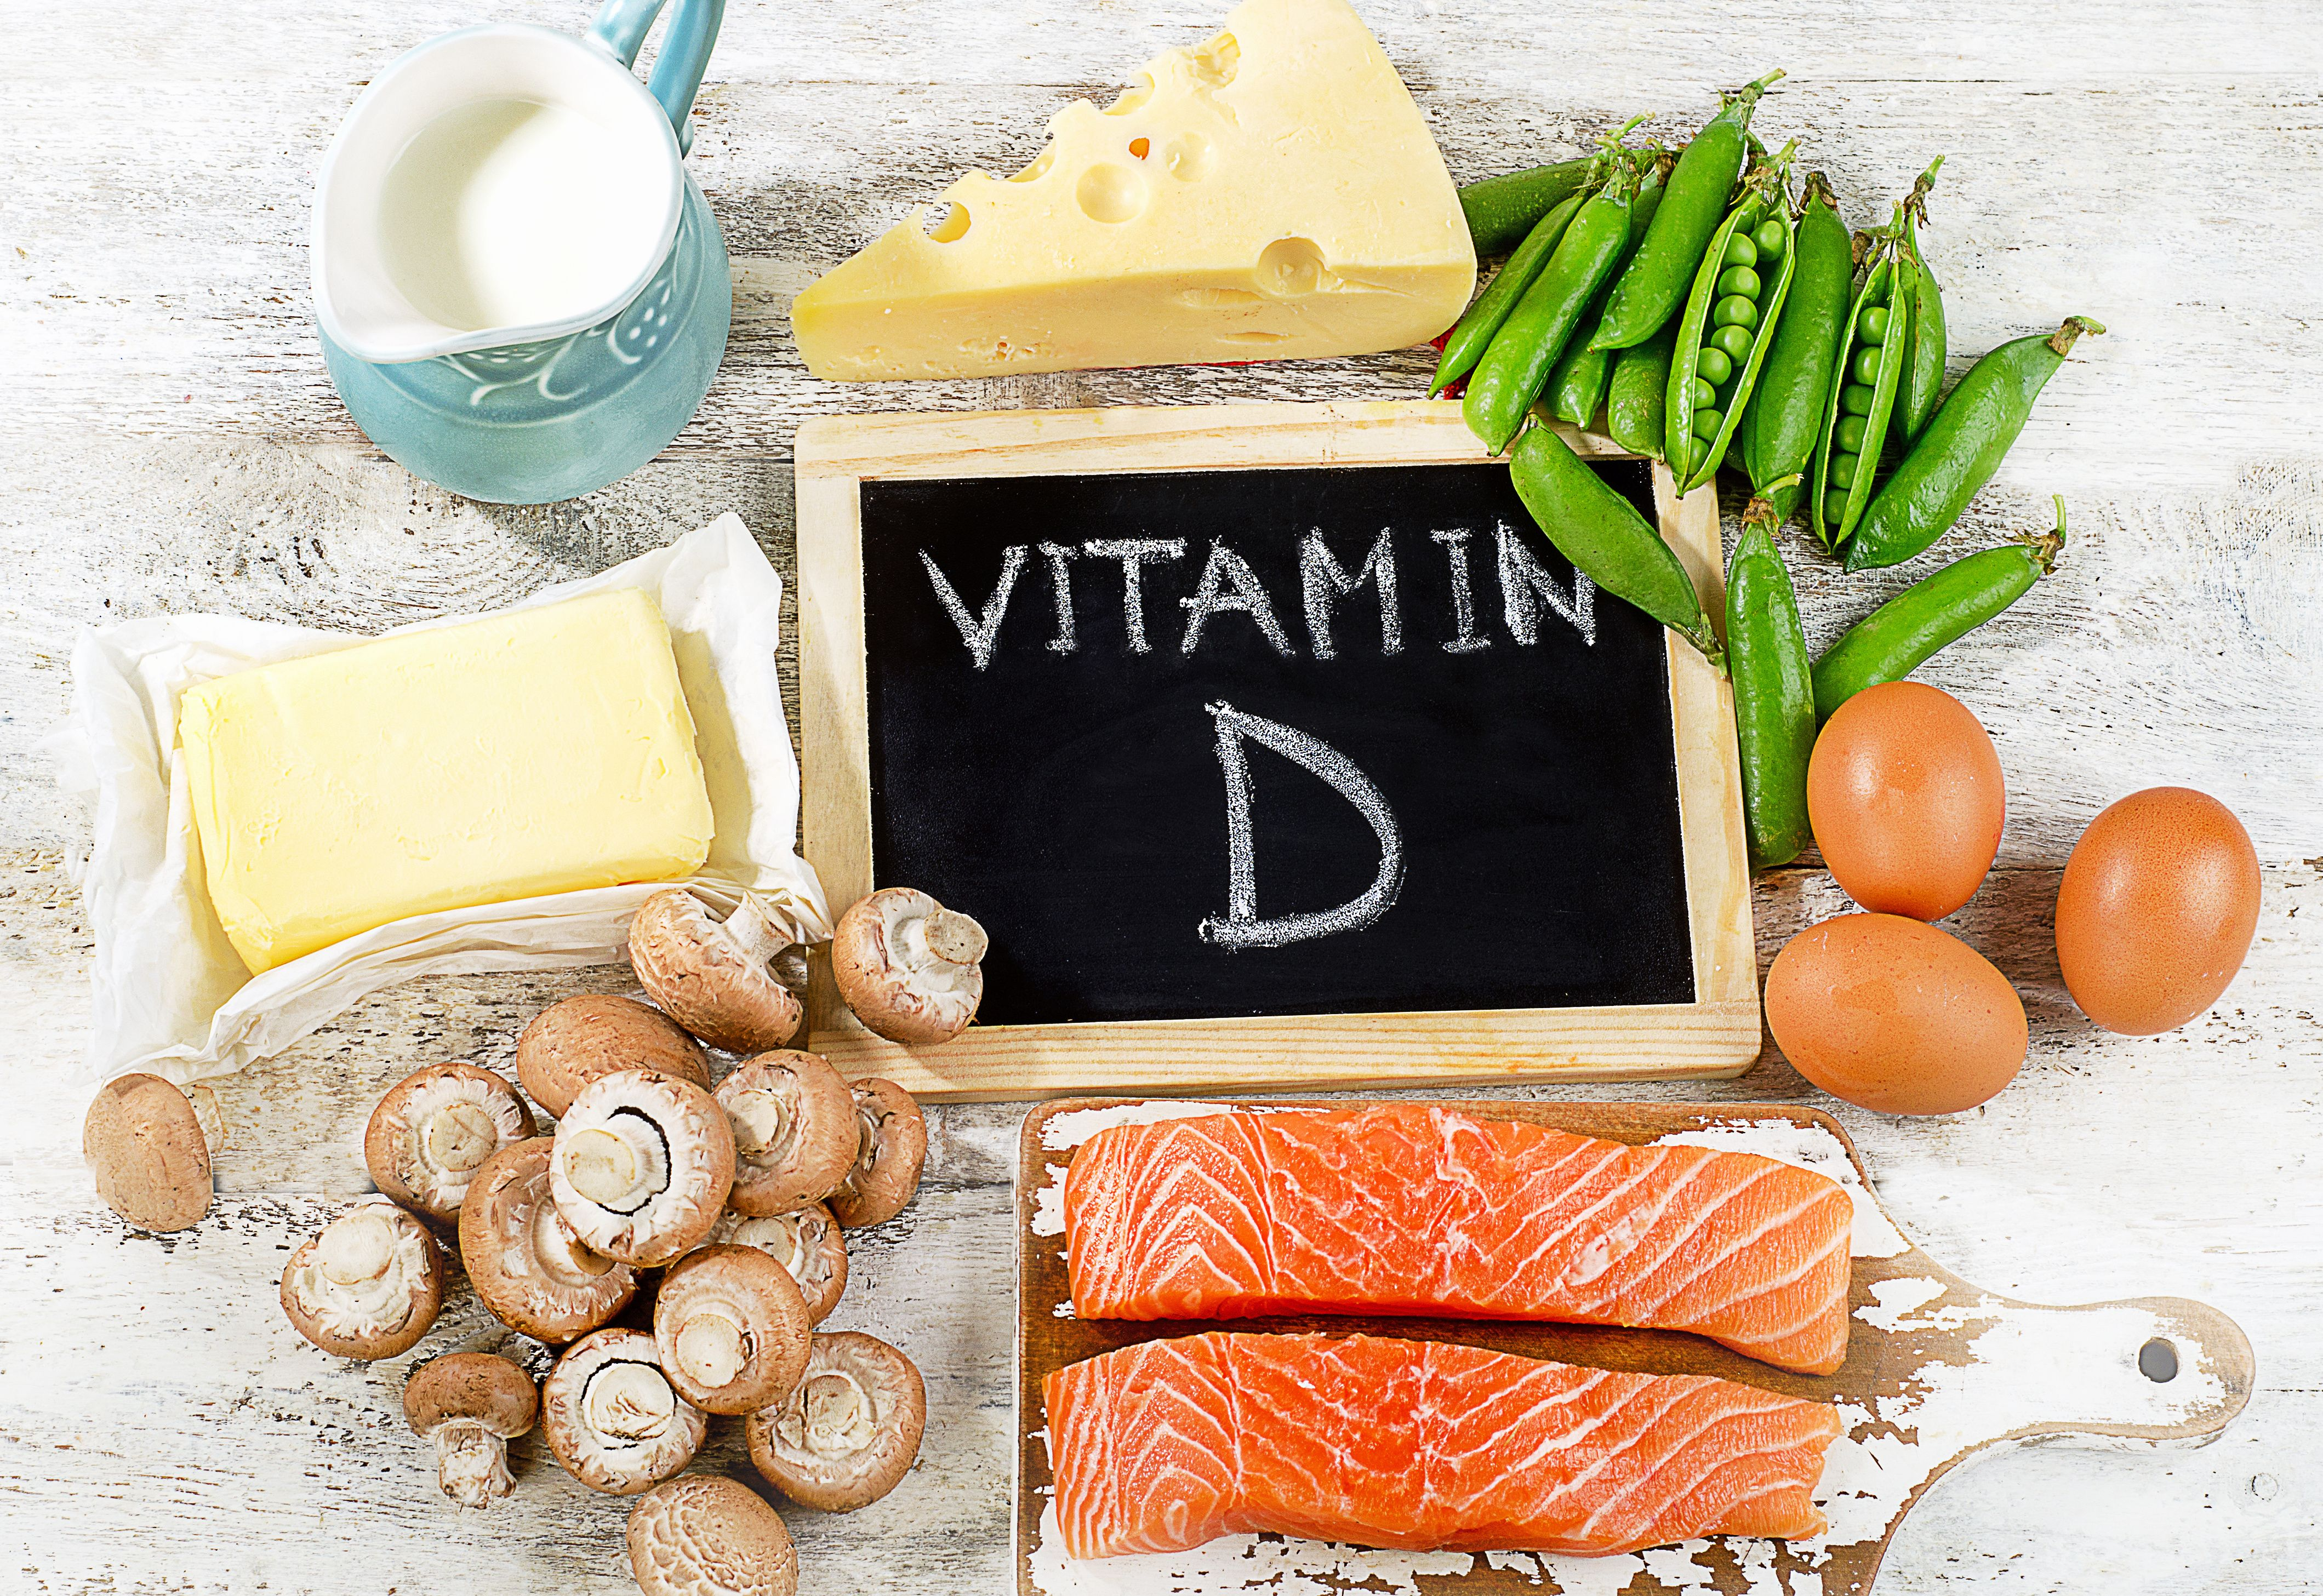 TheboldAge takes a look at whether we should take vitamin D? 4 reasons to ensure you're getting enough of the 'sunshine vitamin'